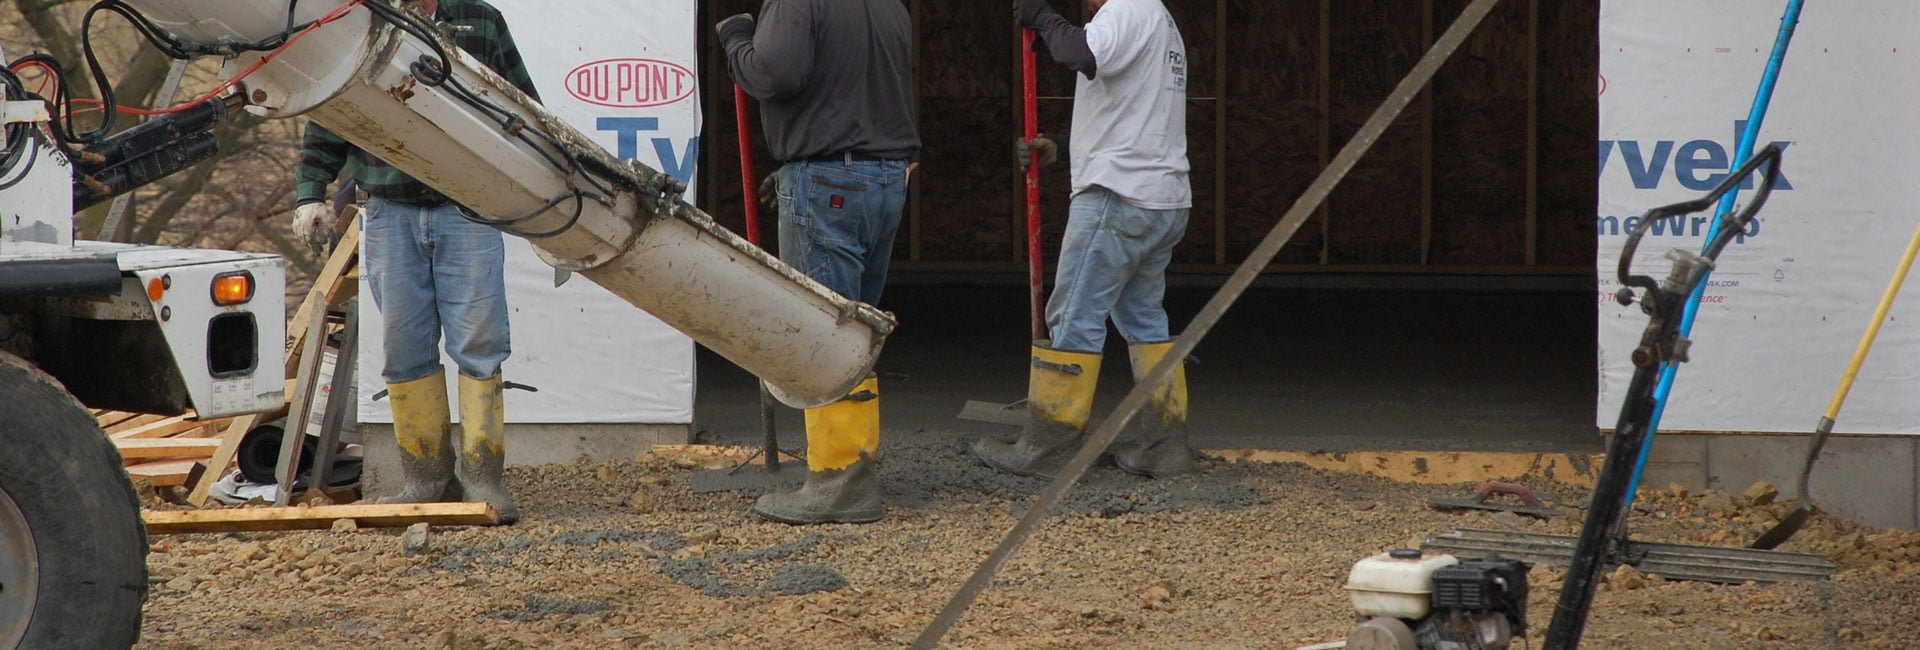 men pouring concrete driveway to unfinished garage